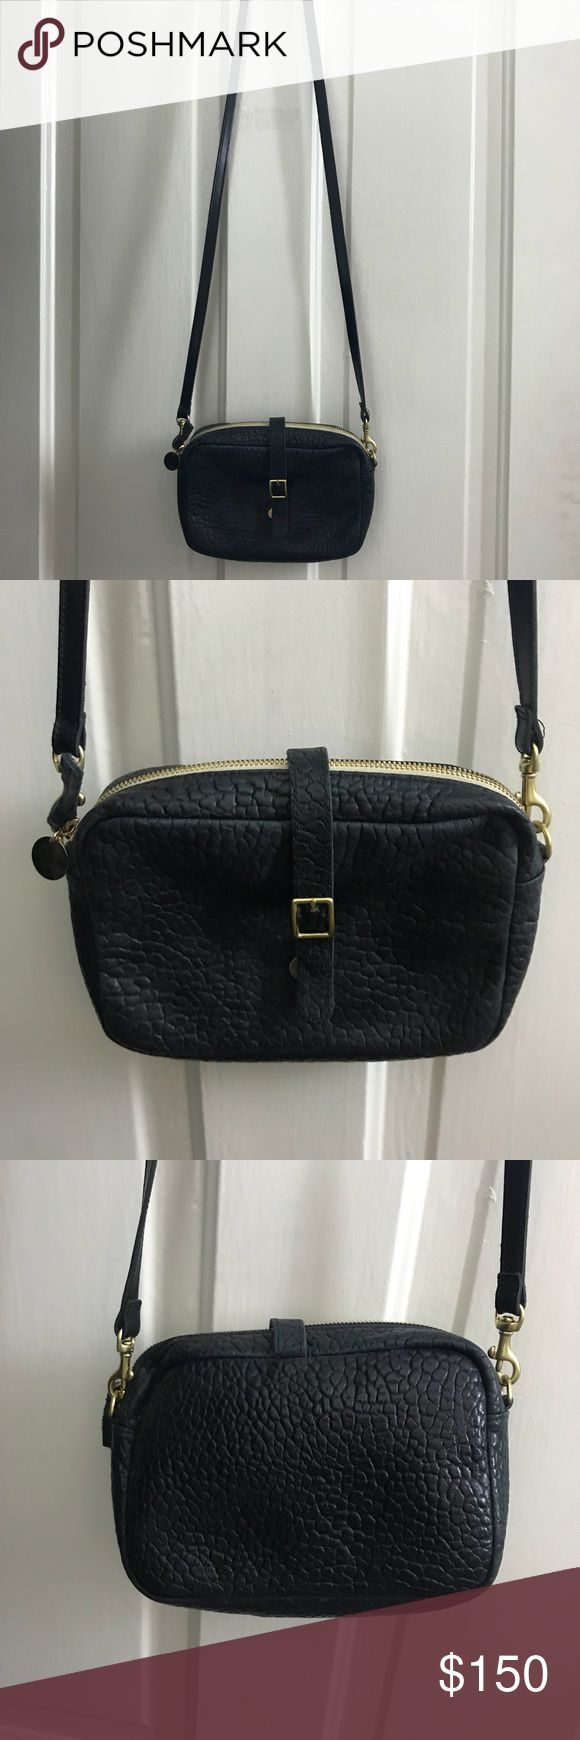 Clare V. Black pebble leather crossbody Great condition. Black leather. Crossbody. Perfect size. Big enough to fit a wallet and phone and keys and beauty supplies. Clare Vivier Bags Crossbody Bags